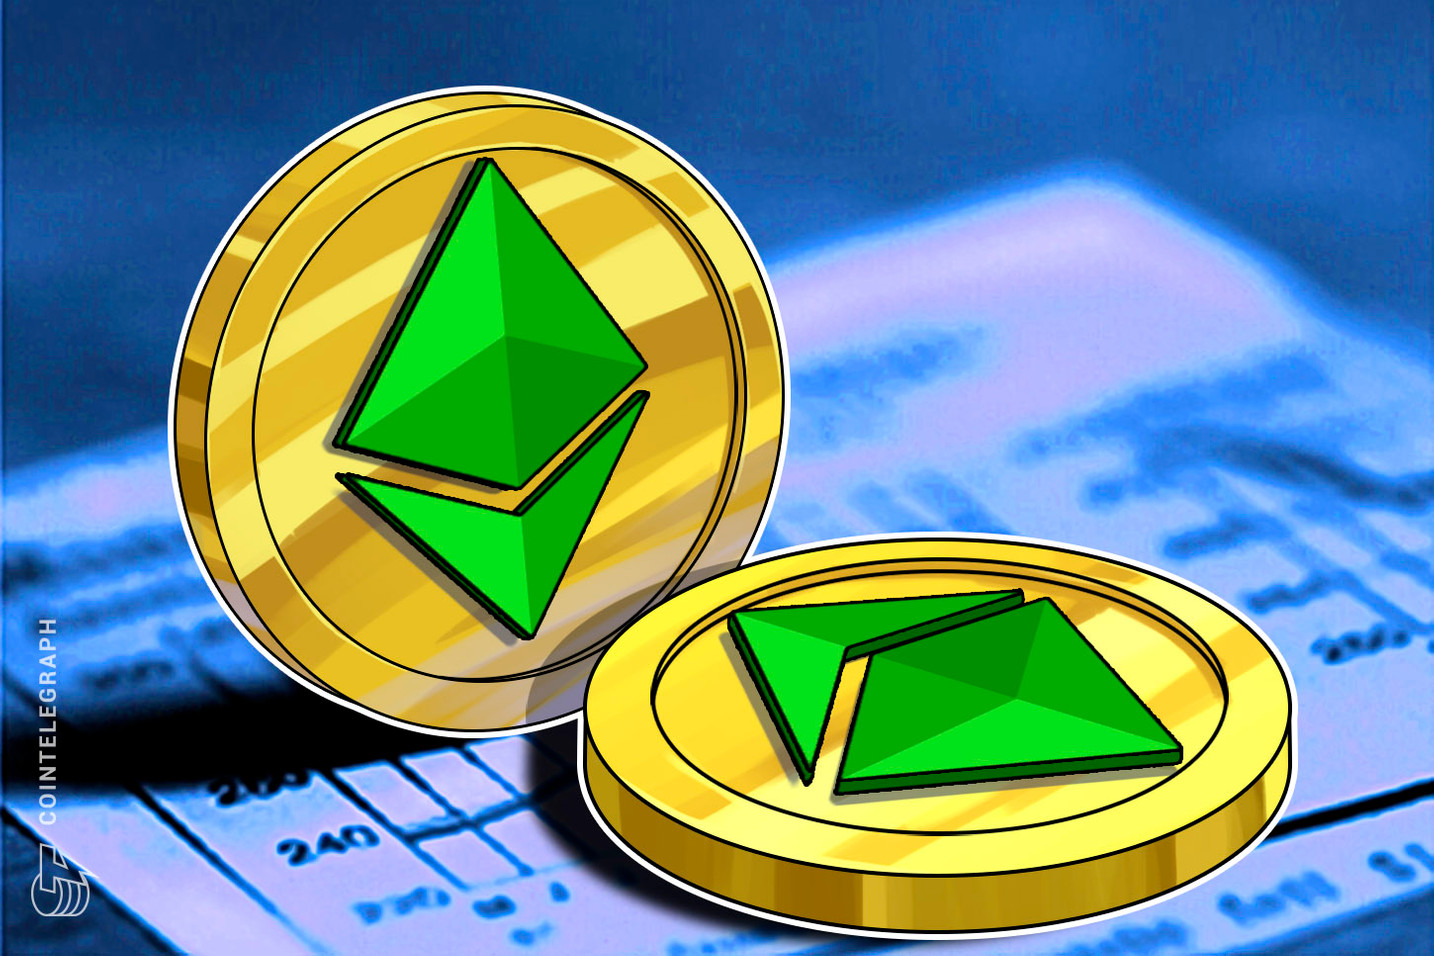 Ethereum Classic 51% Attack Would Cost Just $55 Mln, Result in $1 Bln Profit: Research